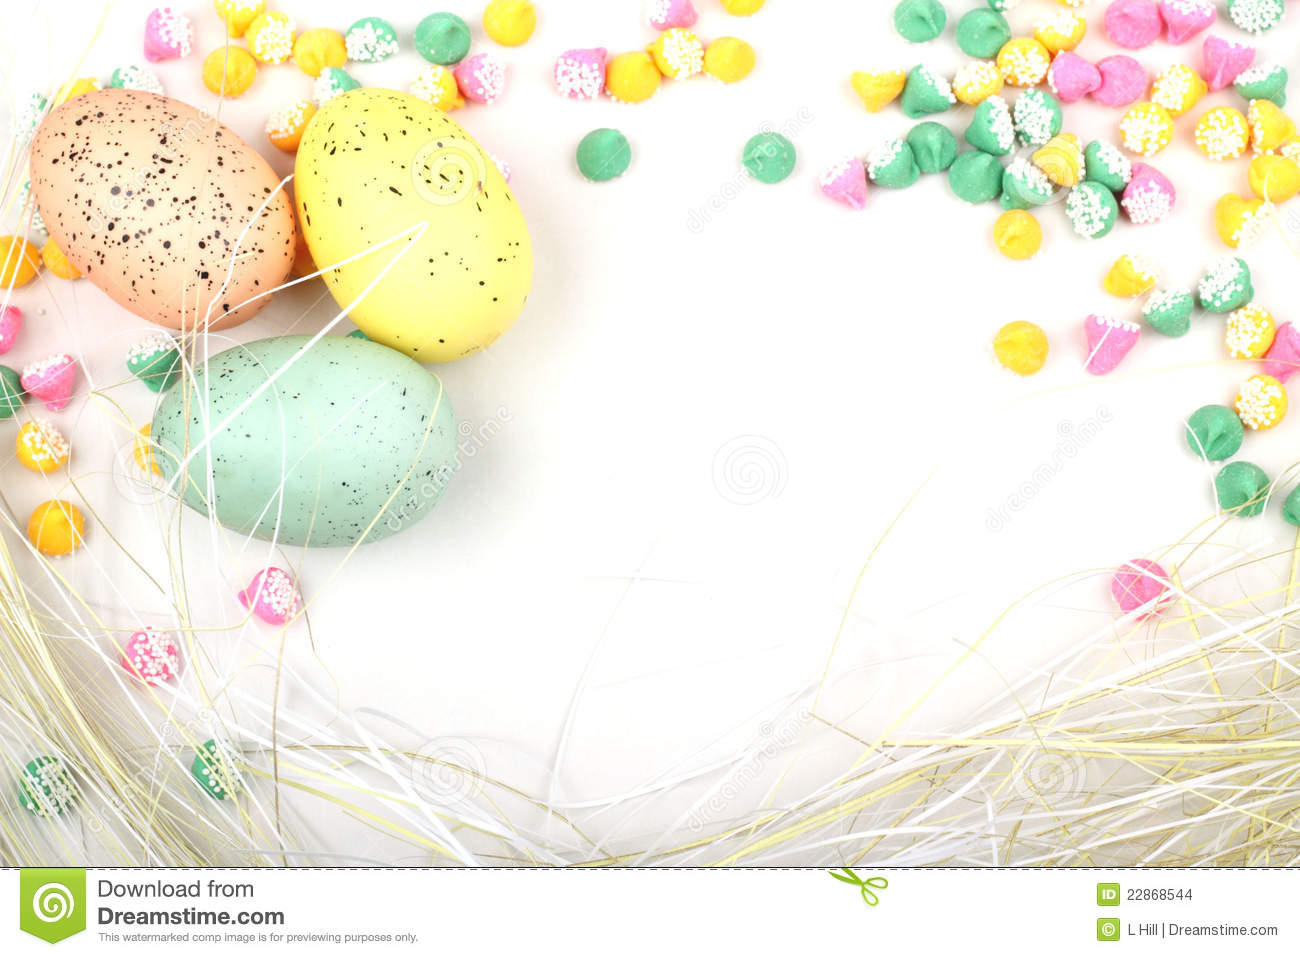 ... Meltie candies, straw and speckled colored Easter eggs. Copy Space